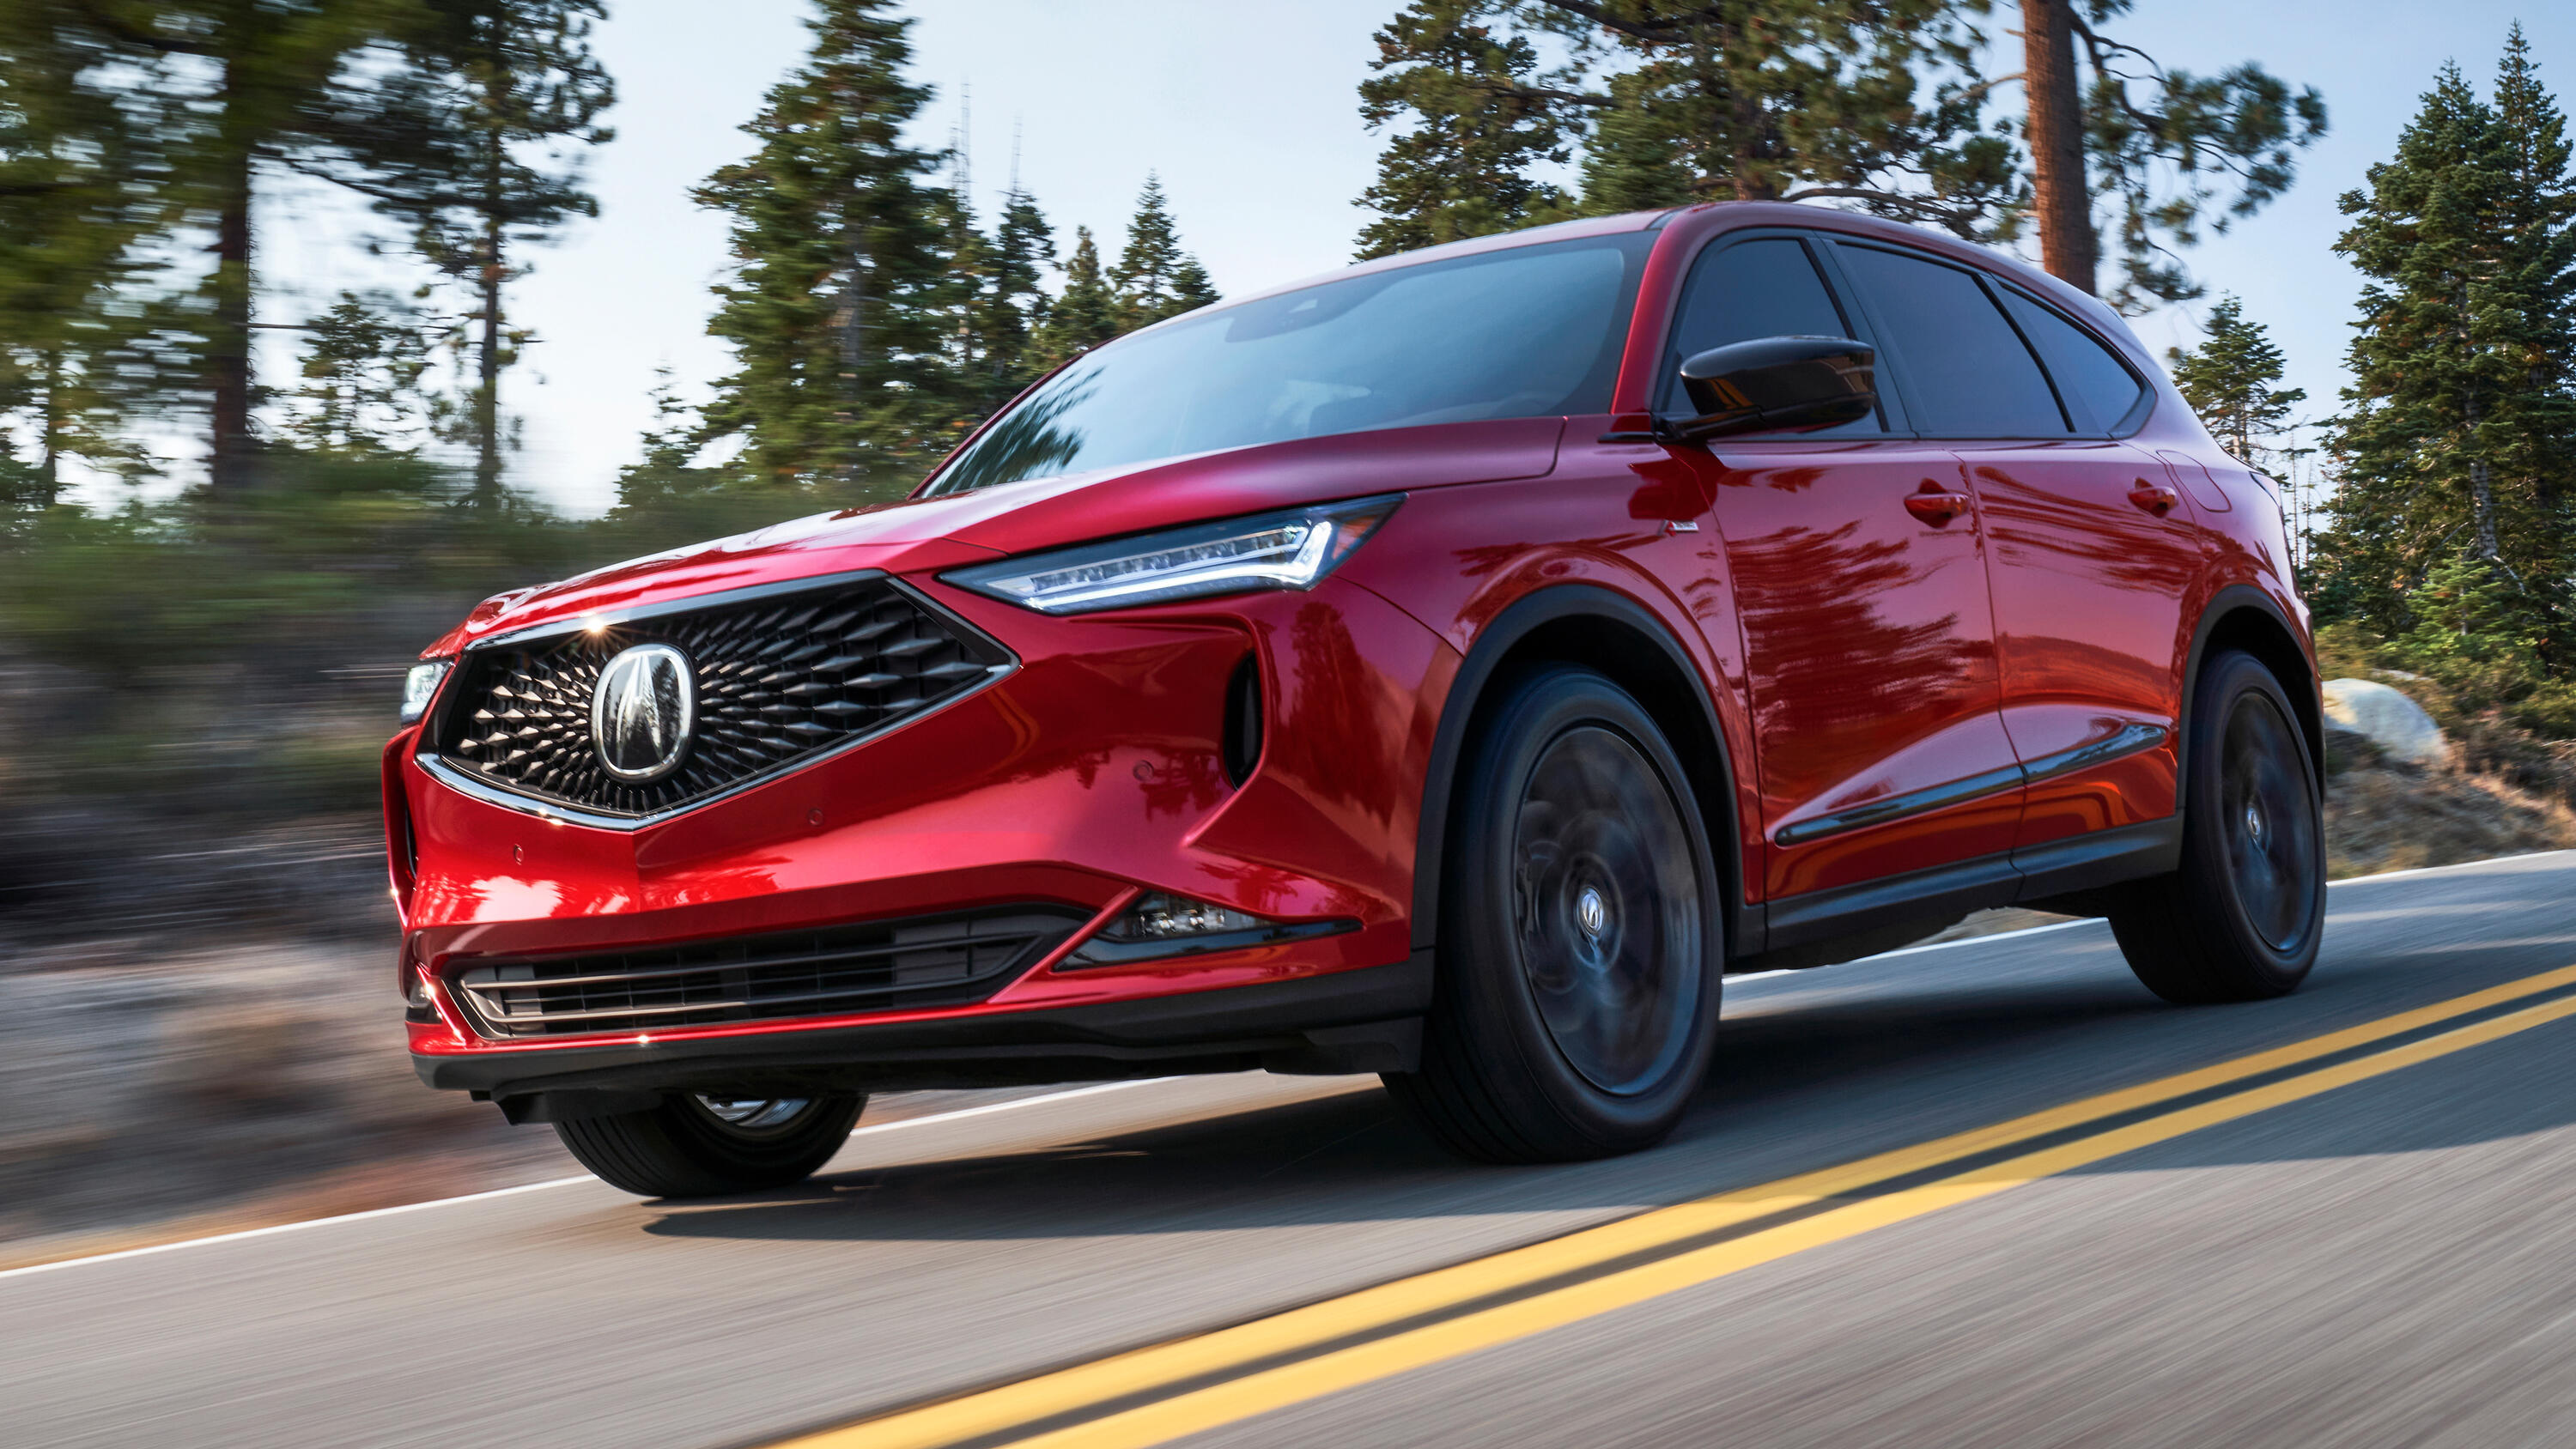 Video: 2022 Acura MDX: The crossover becomes the flagship